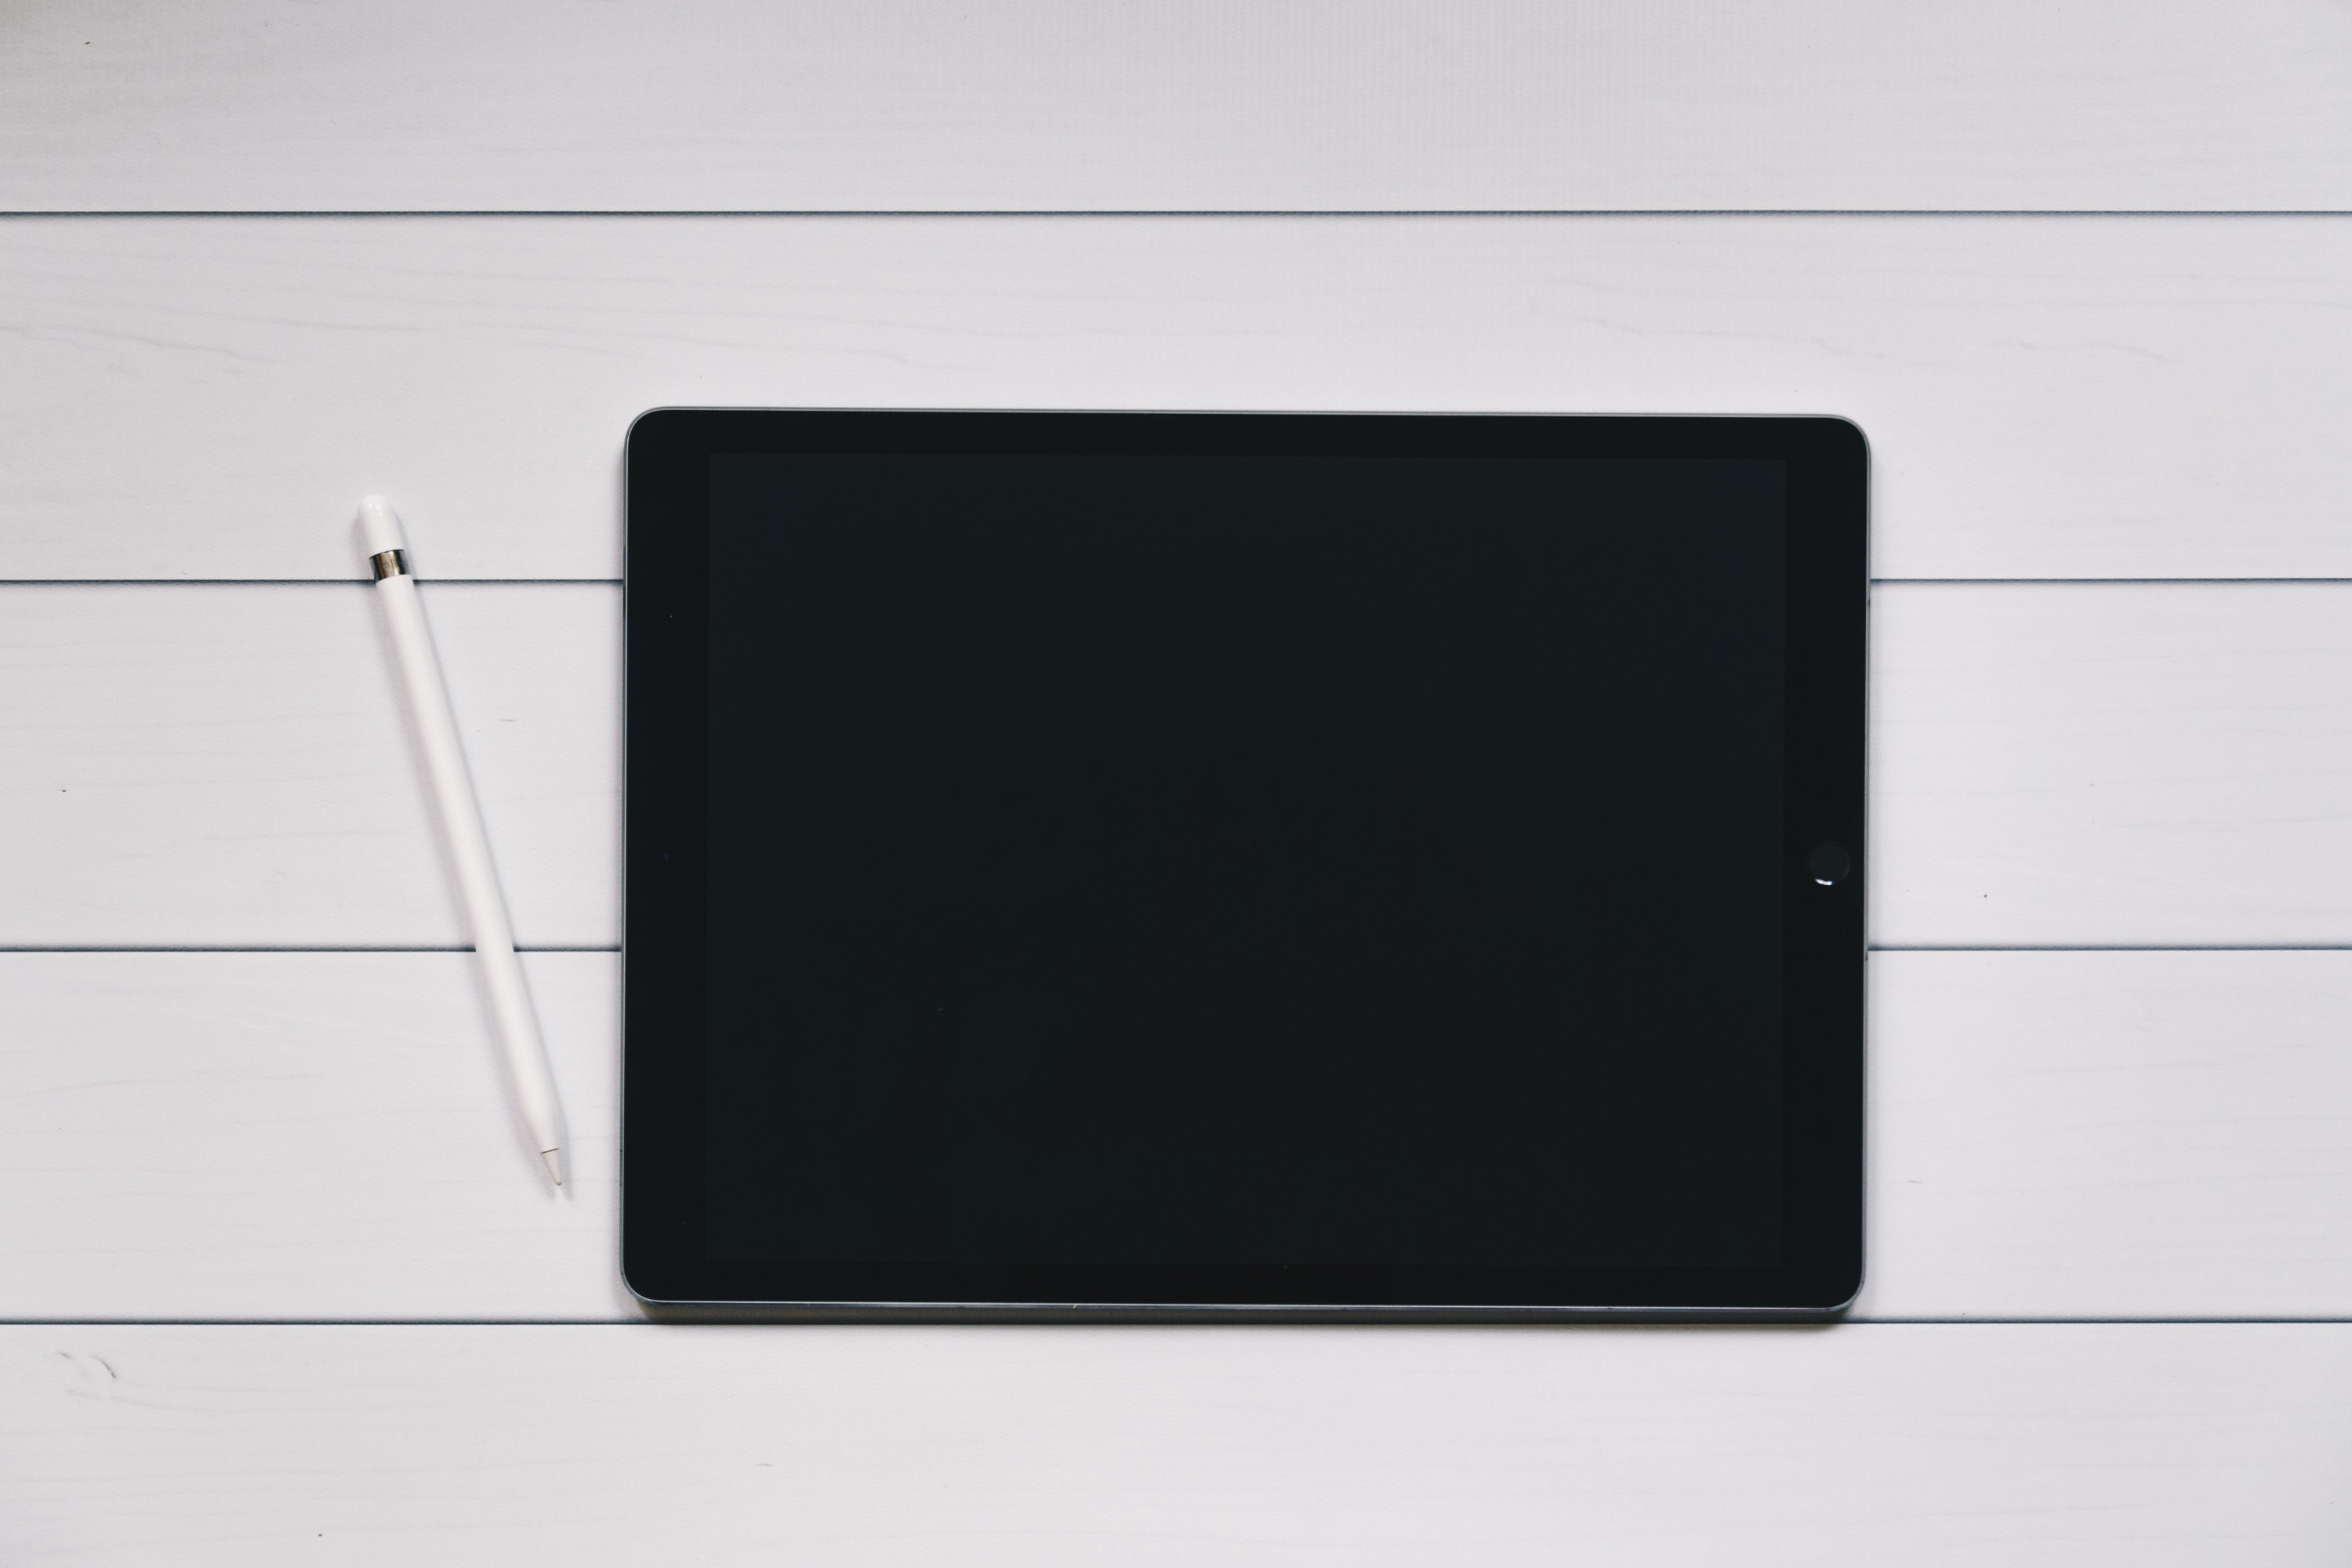 space gray iPad with Apple Pencil with white and black pinstriped background